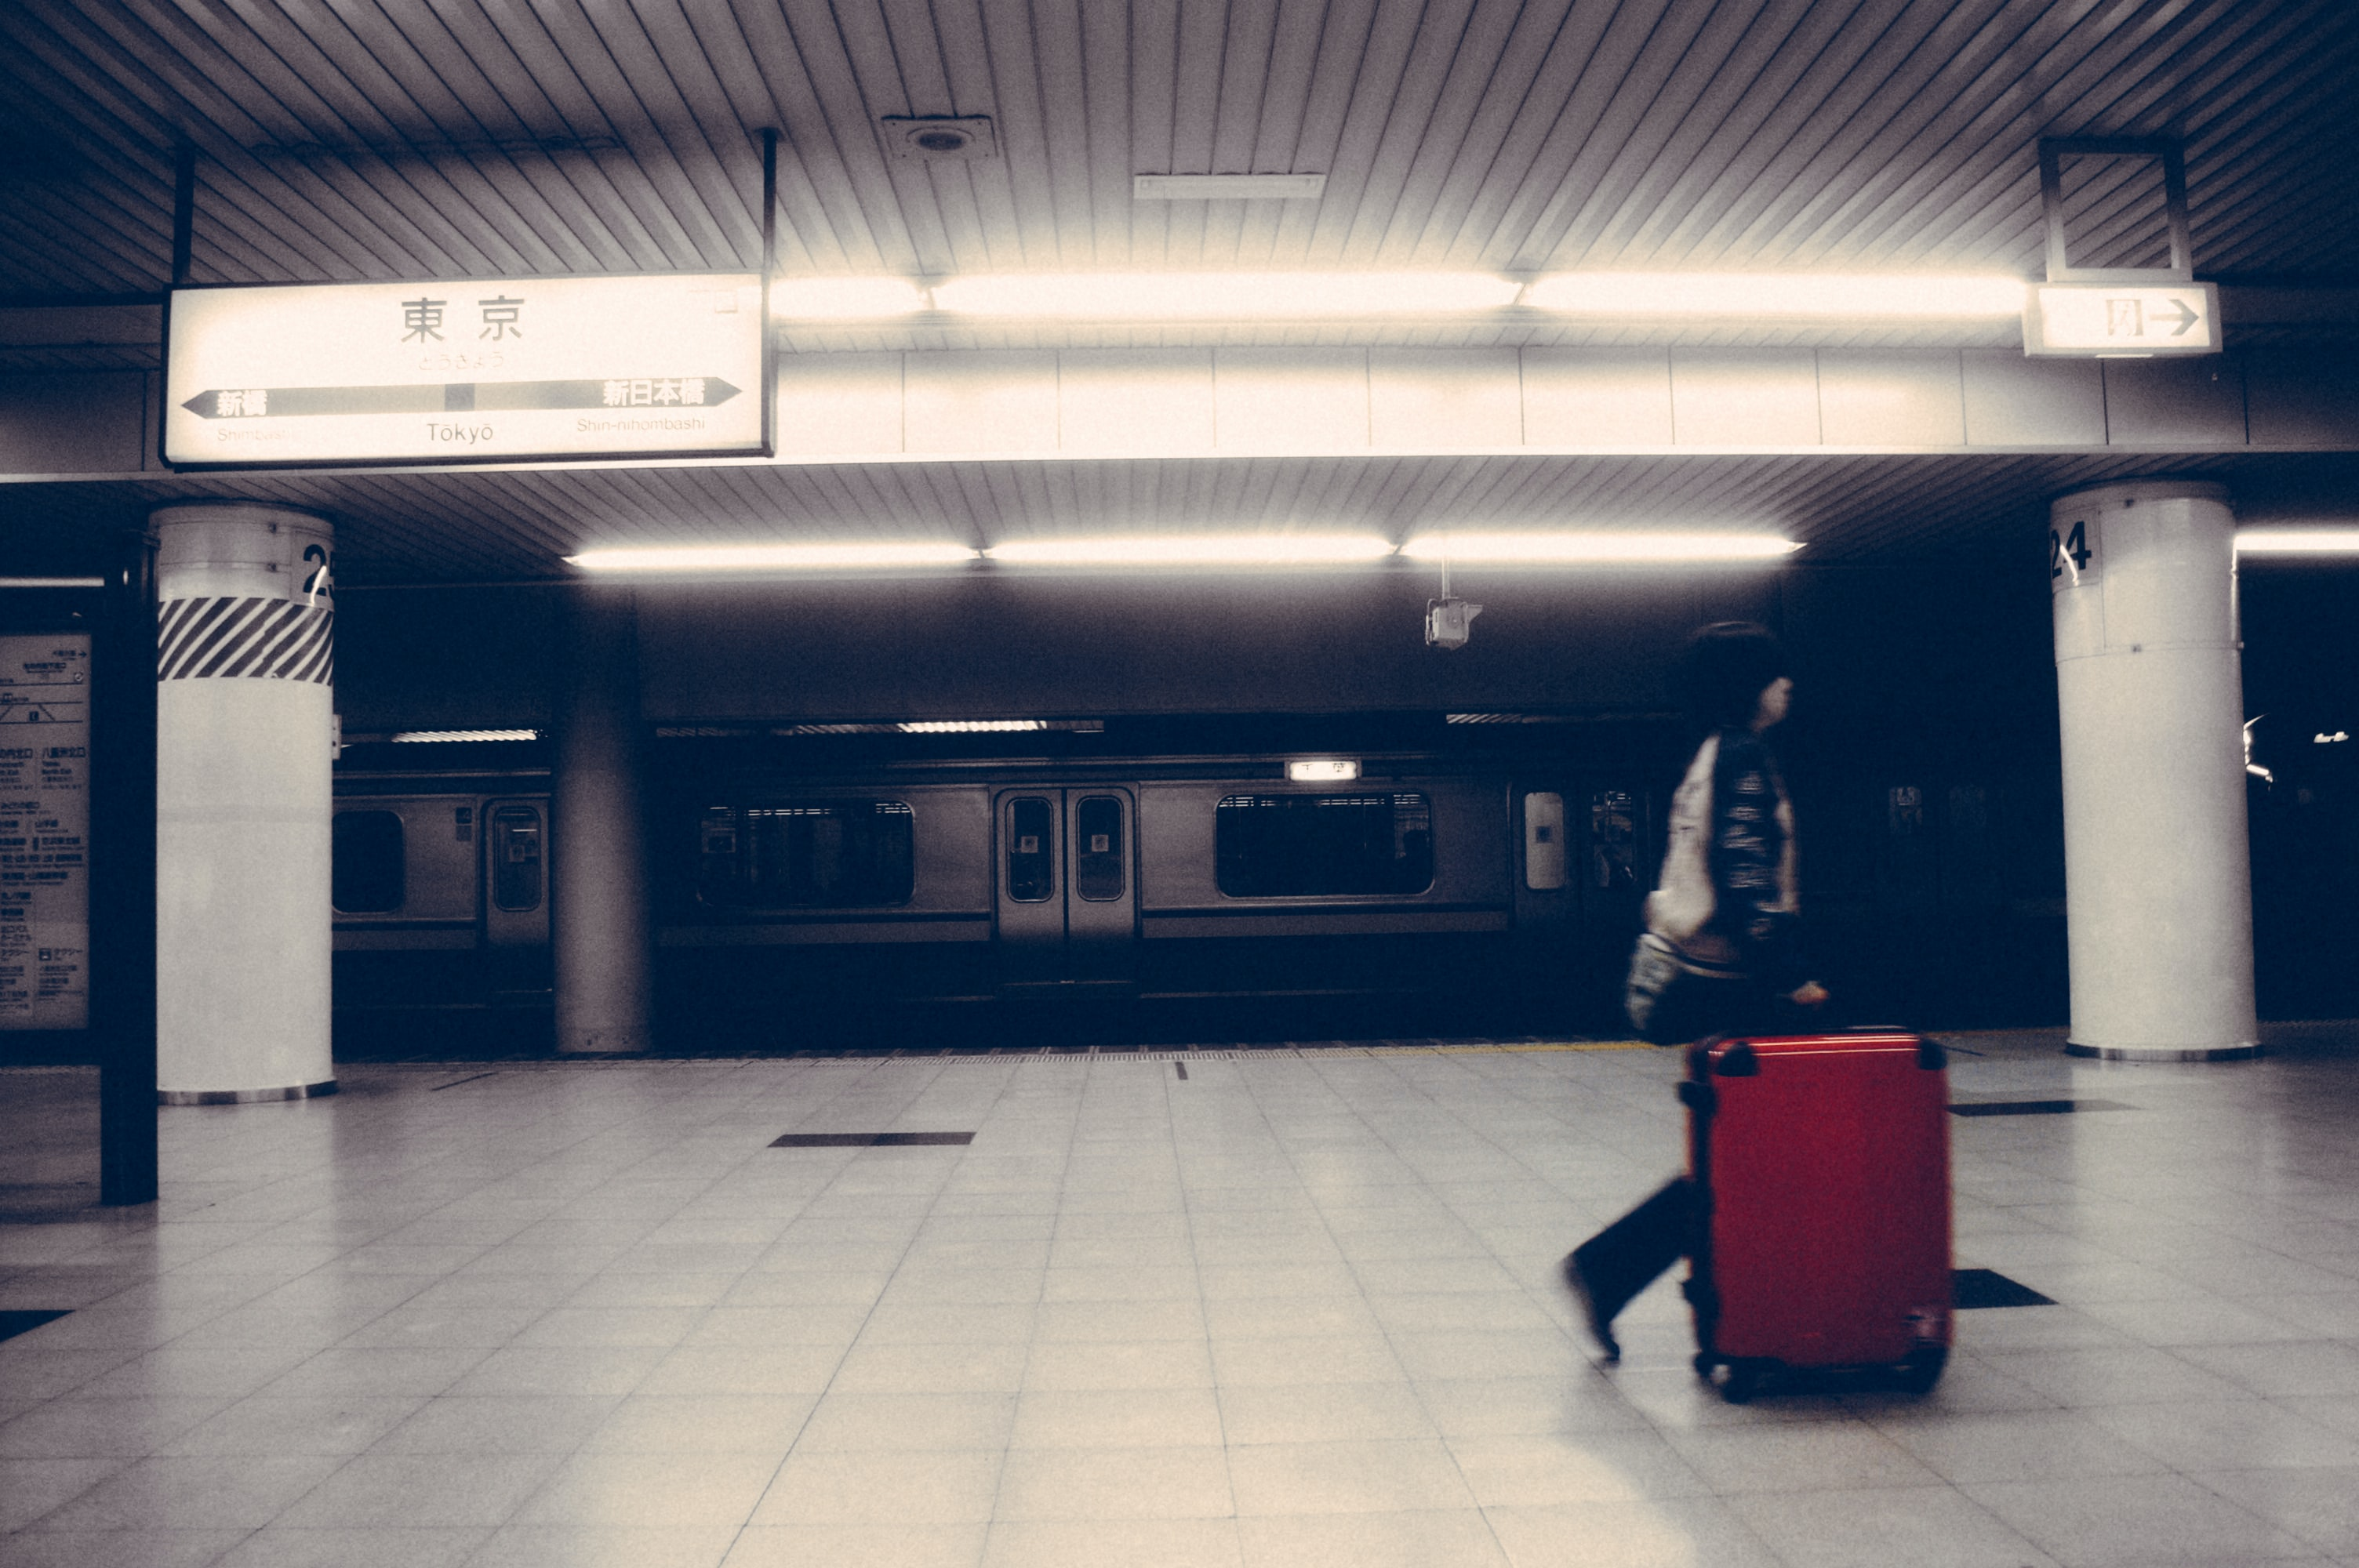 person walking with luggage bag near train inside the building